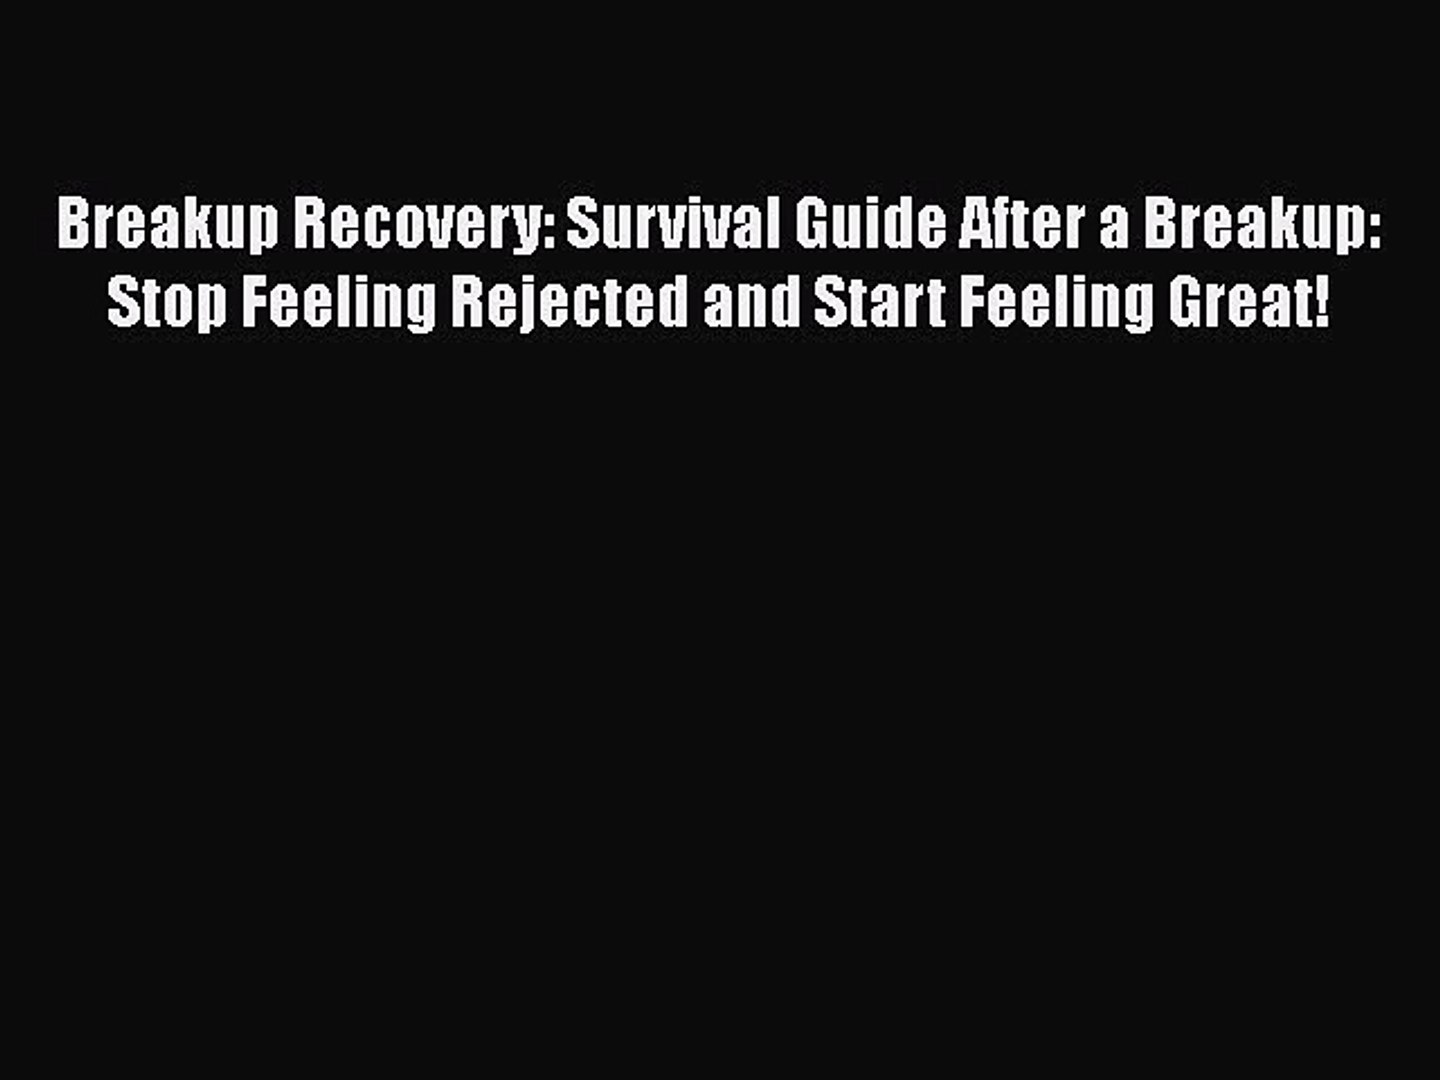 [Read] Breakup Recovery: Survival Guide After a Breakup: Stop Feeling Rejected and Start Feeling